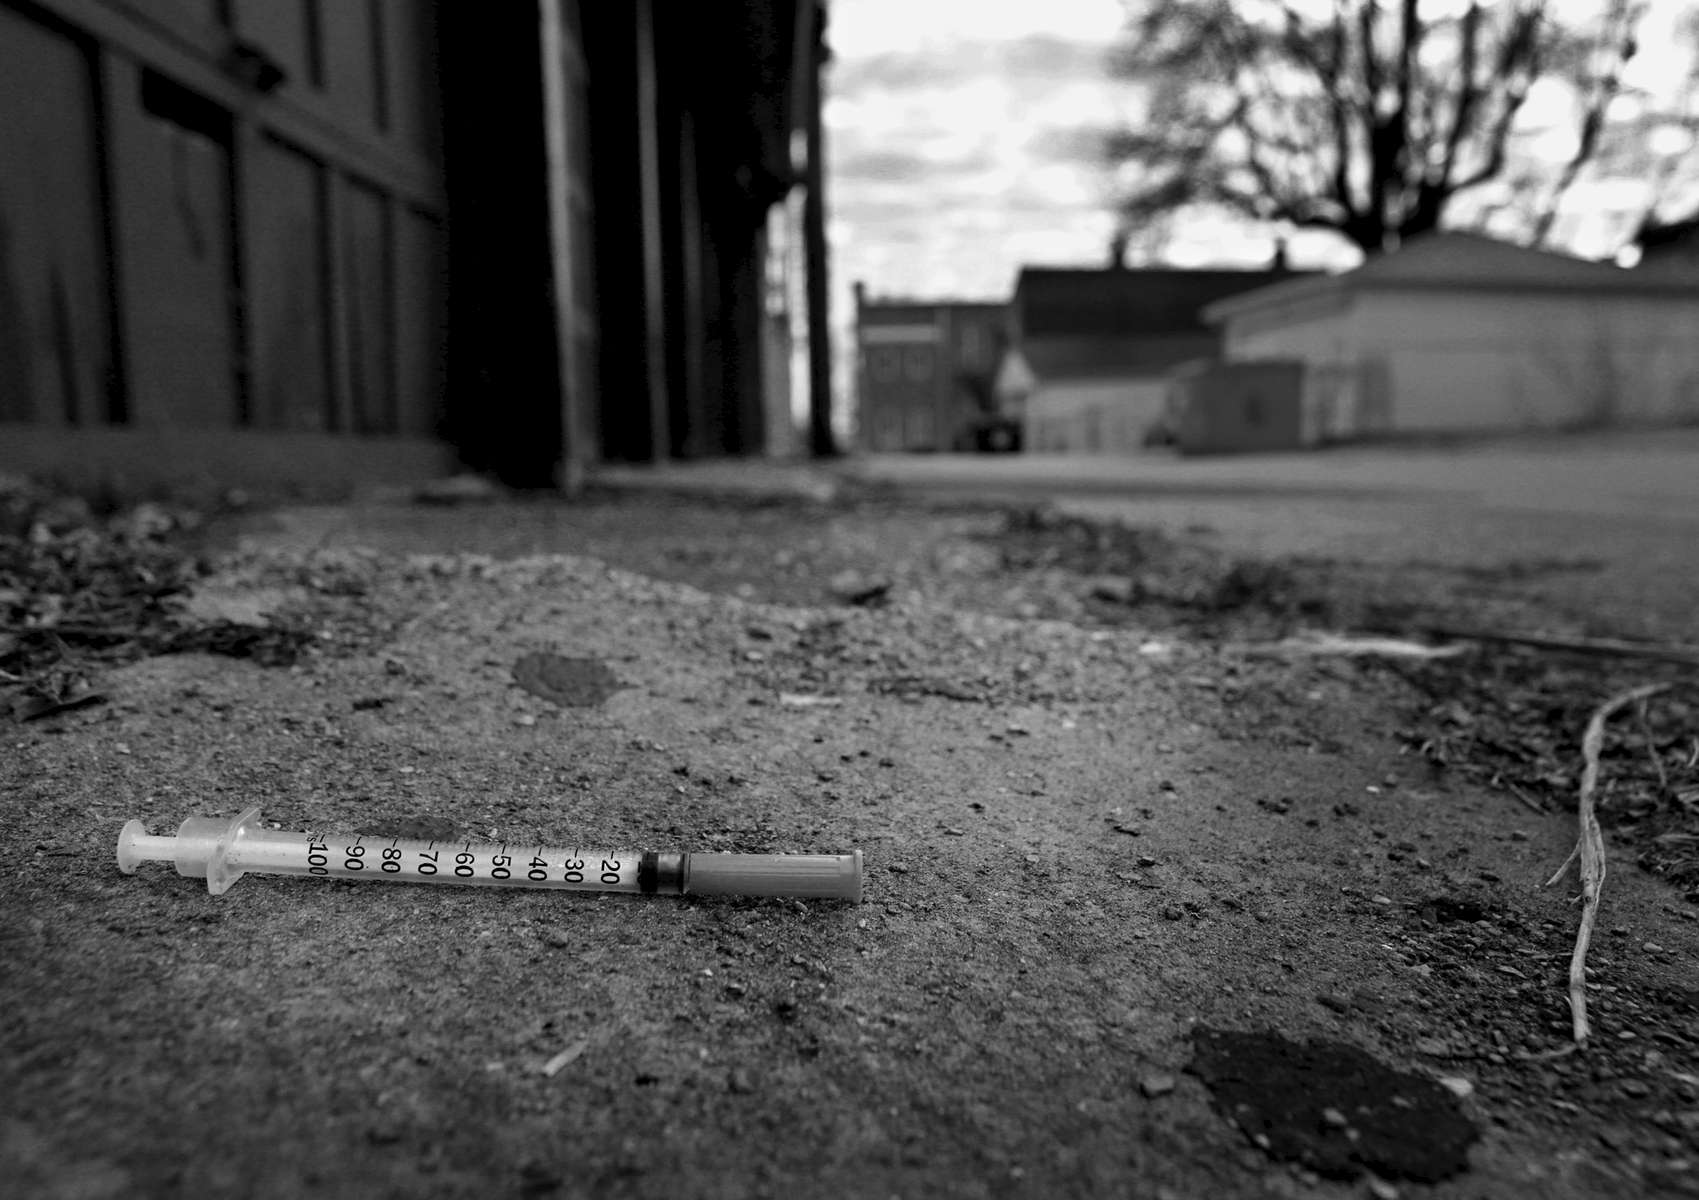 A discarded syringe is left in an alley behind a dilapidated apartment building on South Grand Boulevard in St. Louis on Thursday, Feb. 9, 2017. A year earlier, heroin user Eric Bearden, 28, died of a heroin overdose inside the apartment building. The alley is still known for it's drug use.